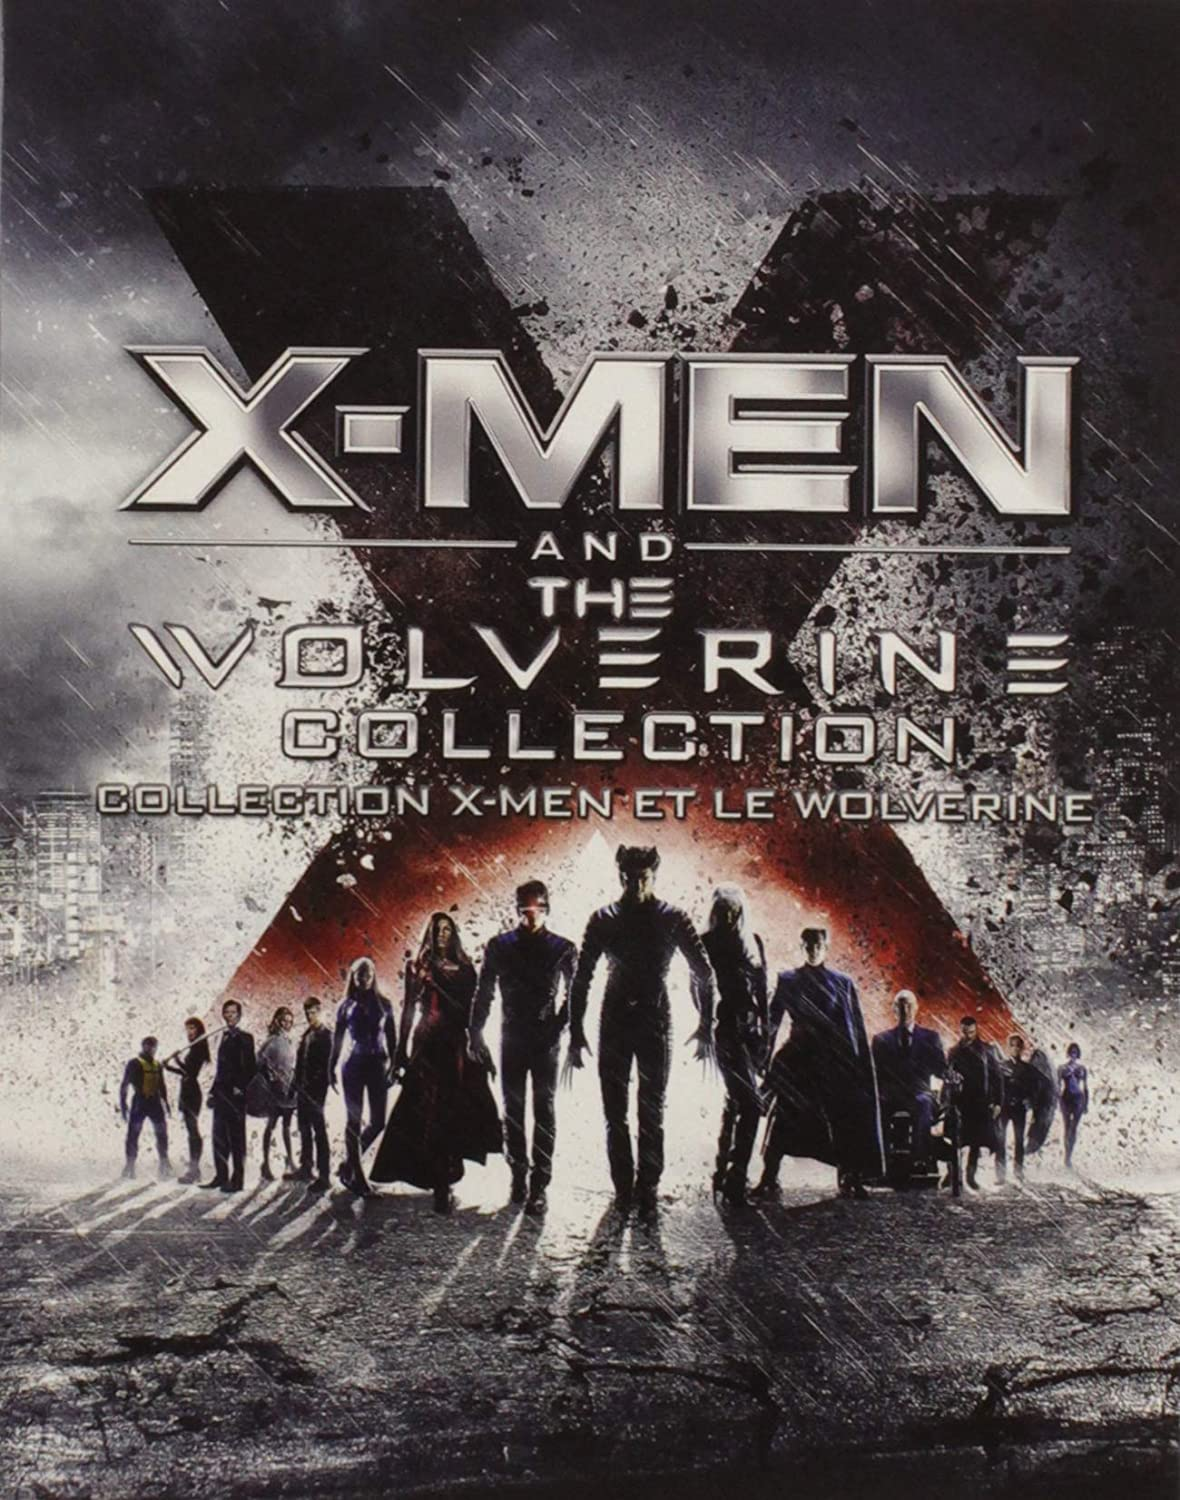 X-Men and the Wolverine Collection X-men / X2: X-Men United / X-Men The Last Stand / X:Men Origins Wolverine / X-Men First Class / The Wolverine Blu-ray: Amazon.es: Cine y Series TV